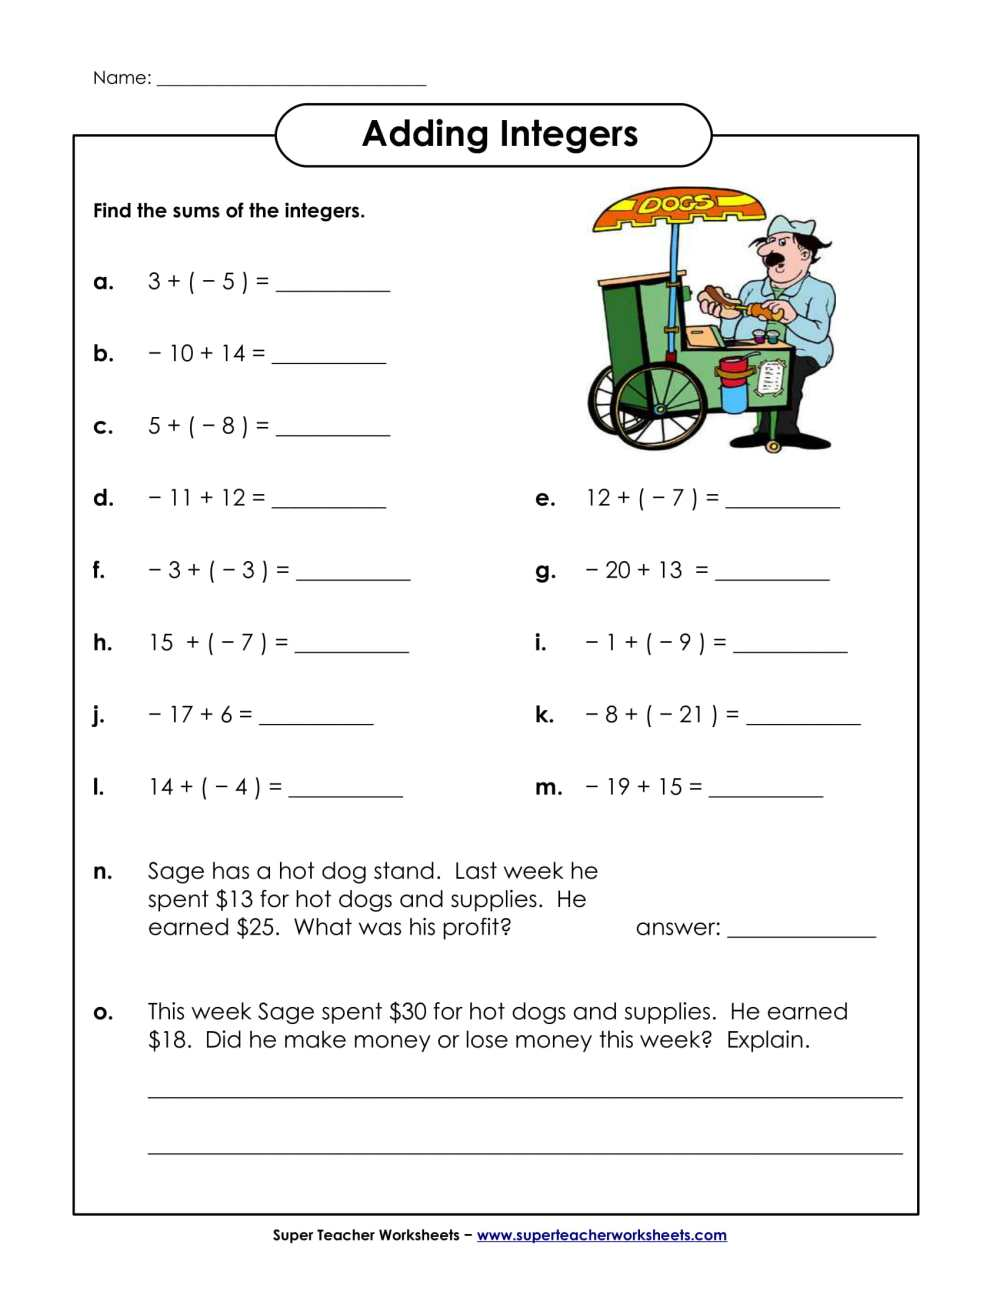 medium resolution of Adding Integers Worksheet Scoreboard   Printable Worksheets and Activities  for Teachers